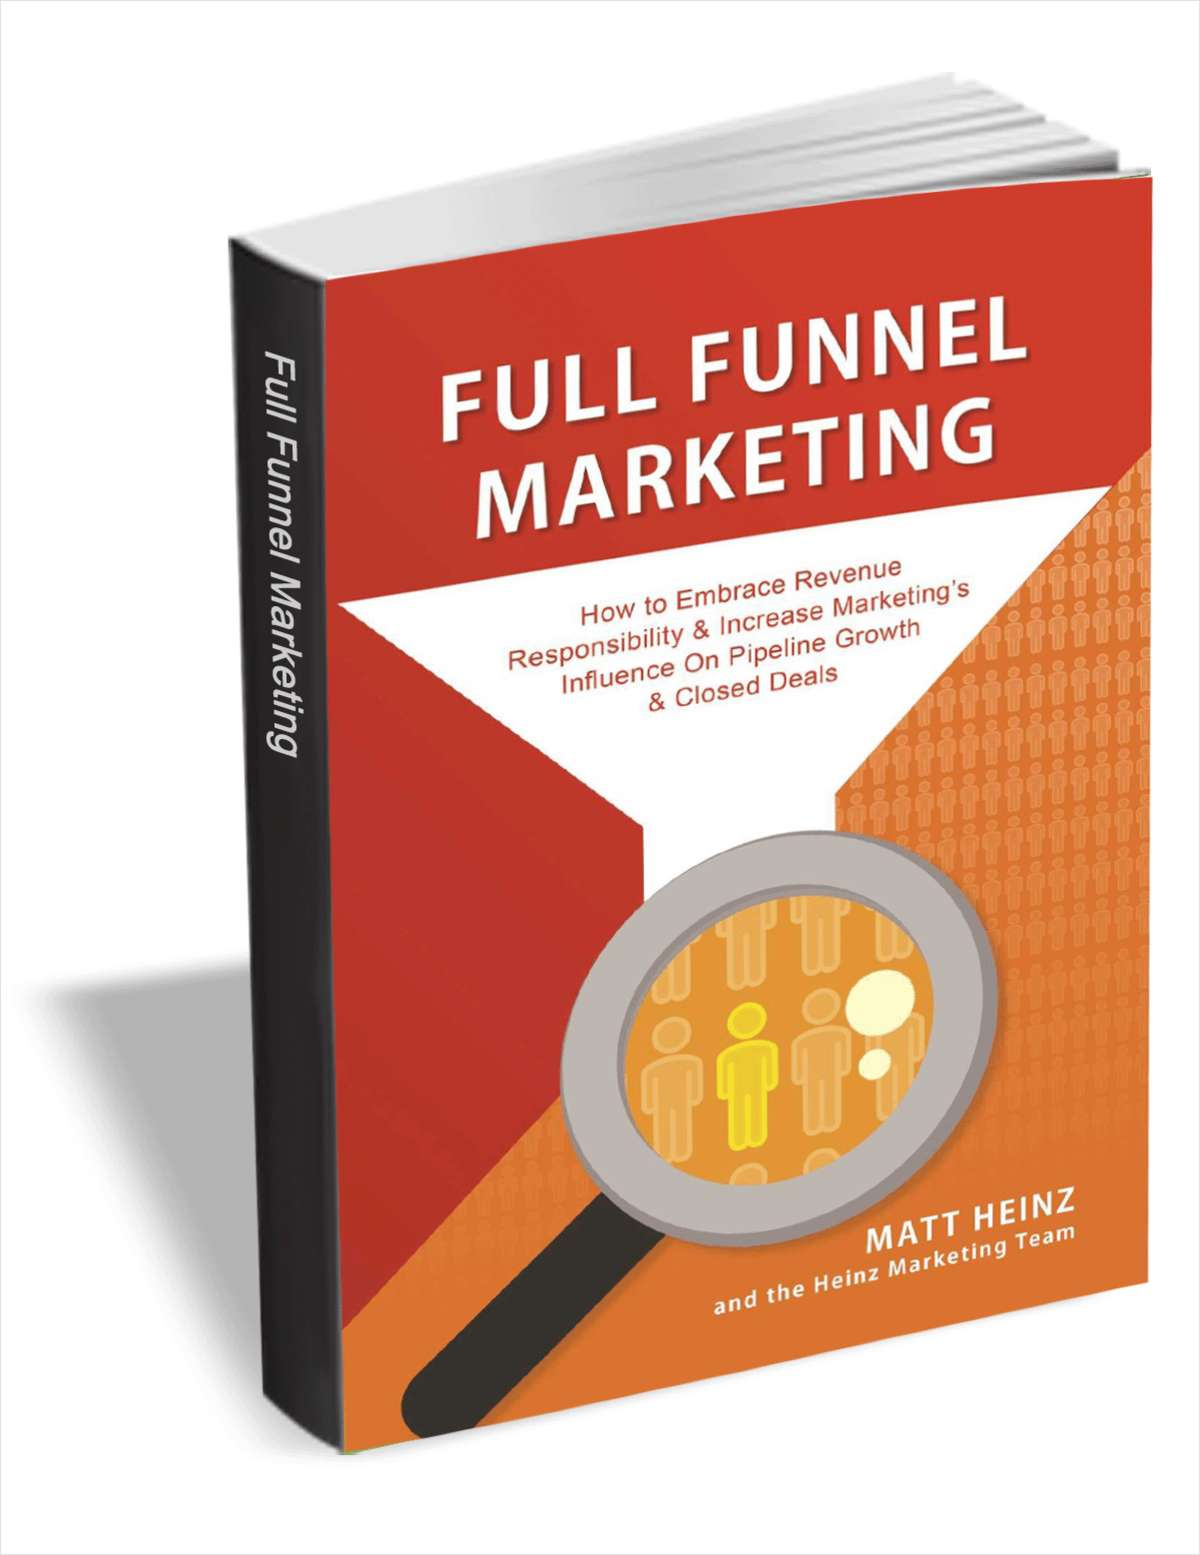 Full Funnel Marketing